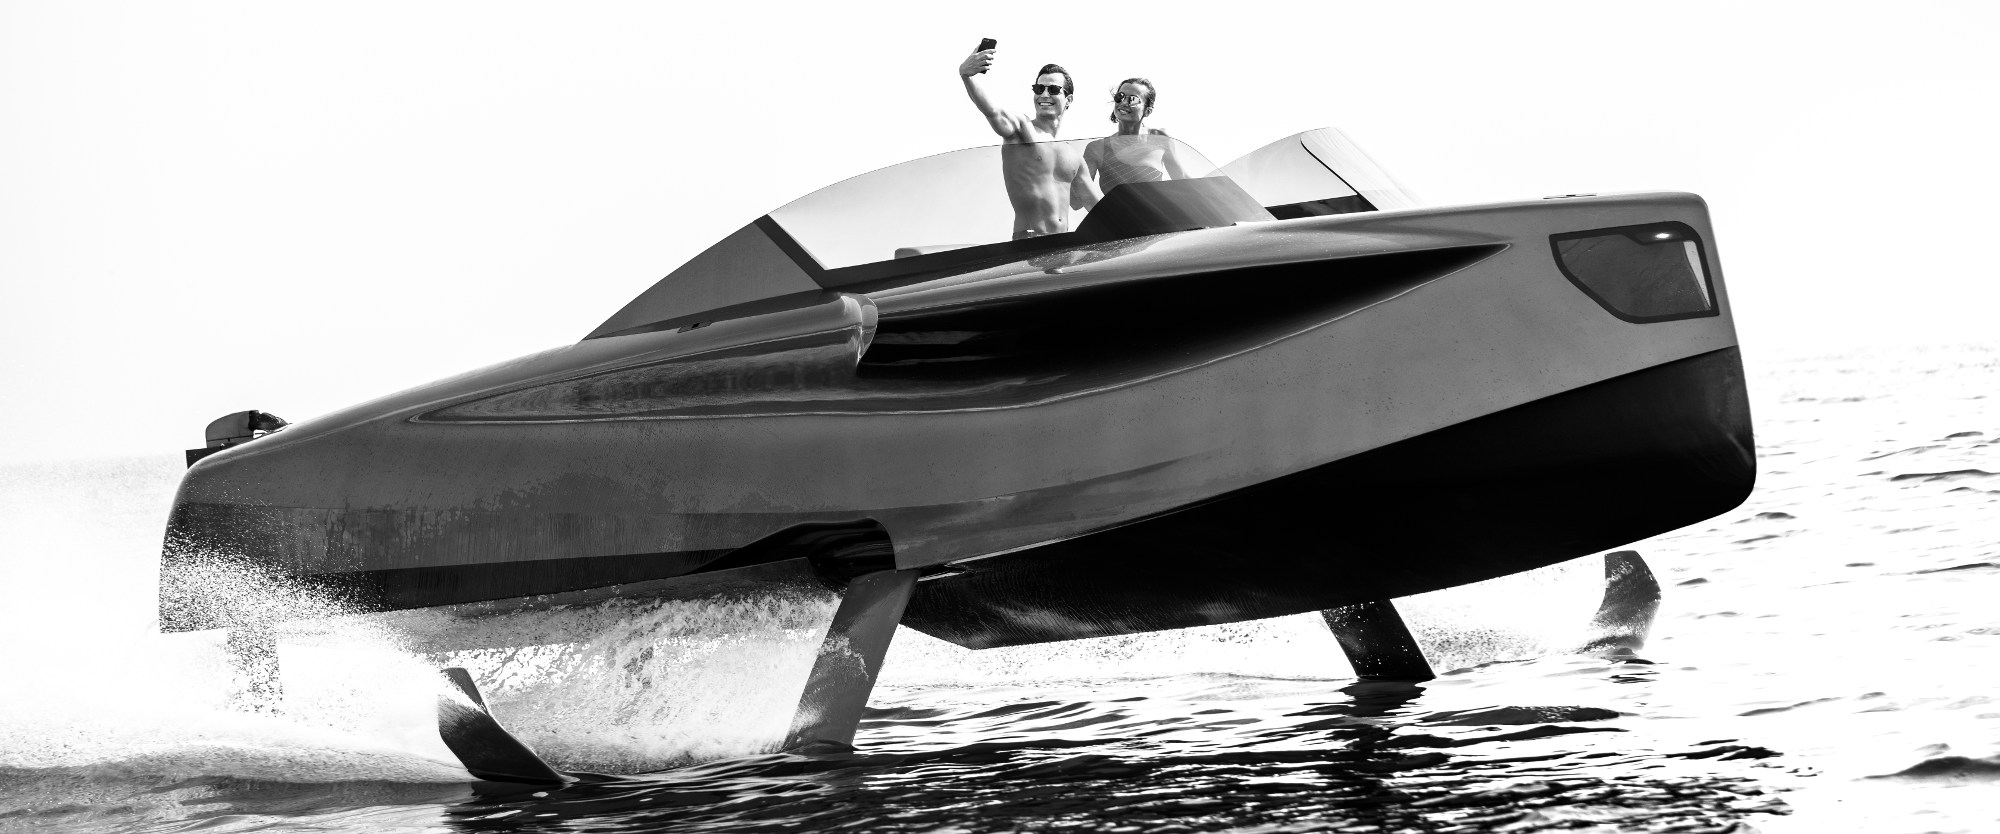 Discussion on this topic: Foiler Flying Yacht, foiler-flying-yacht/